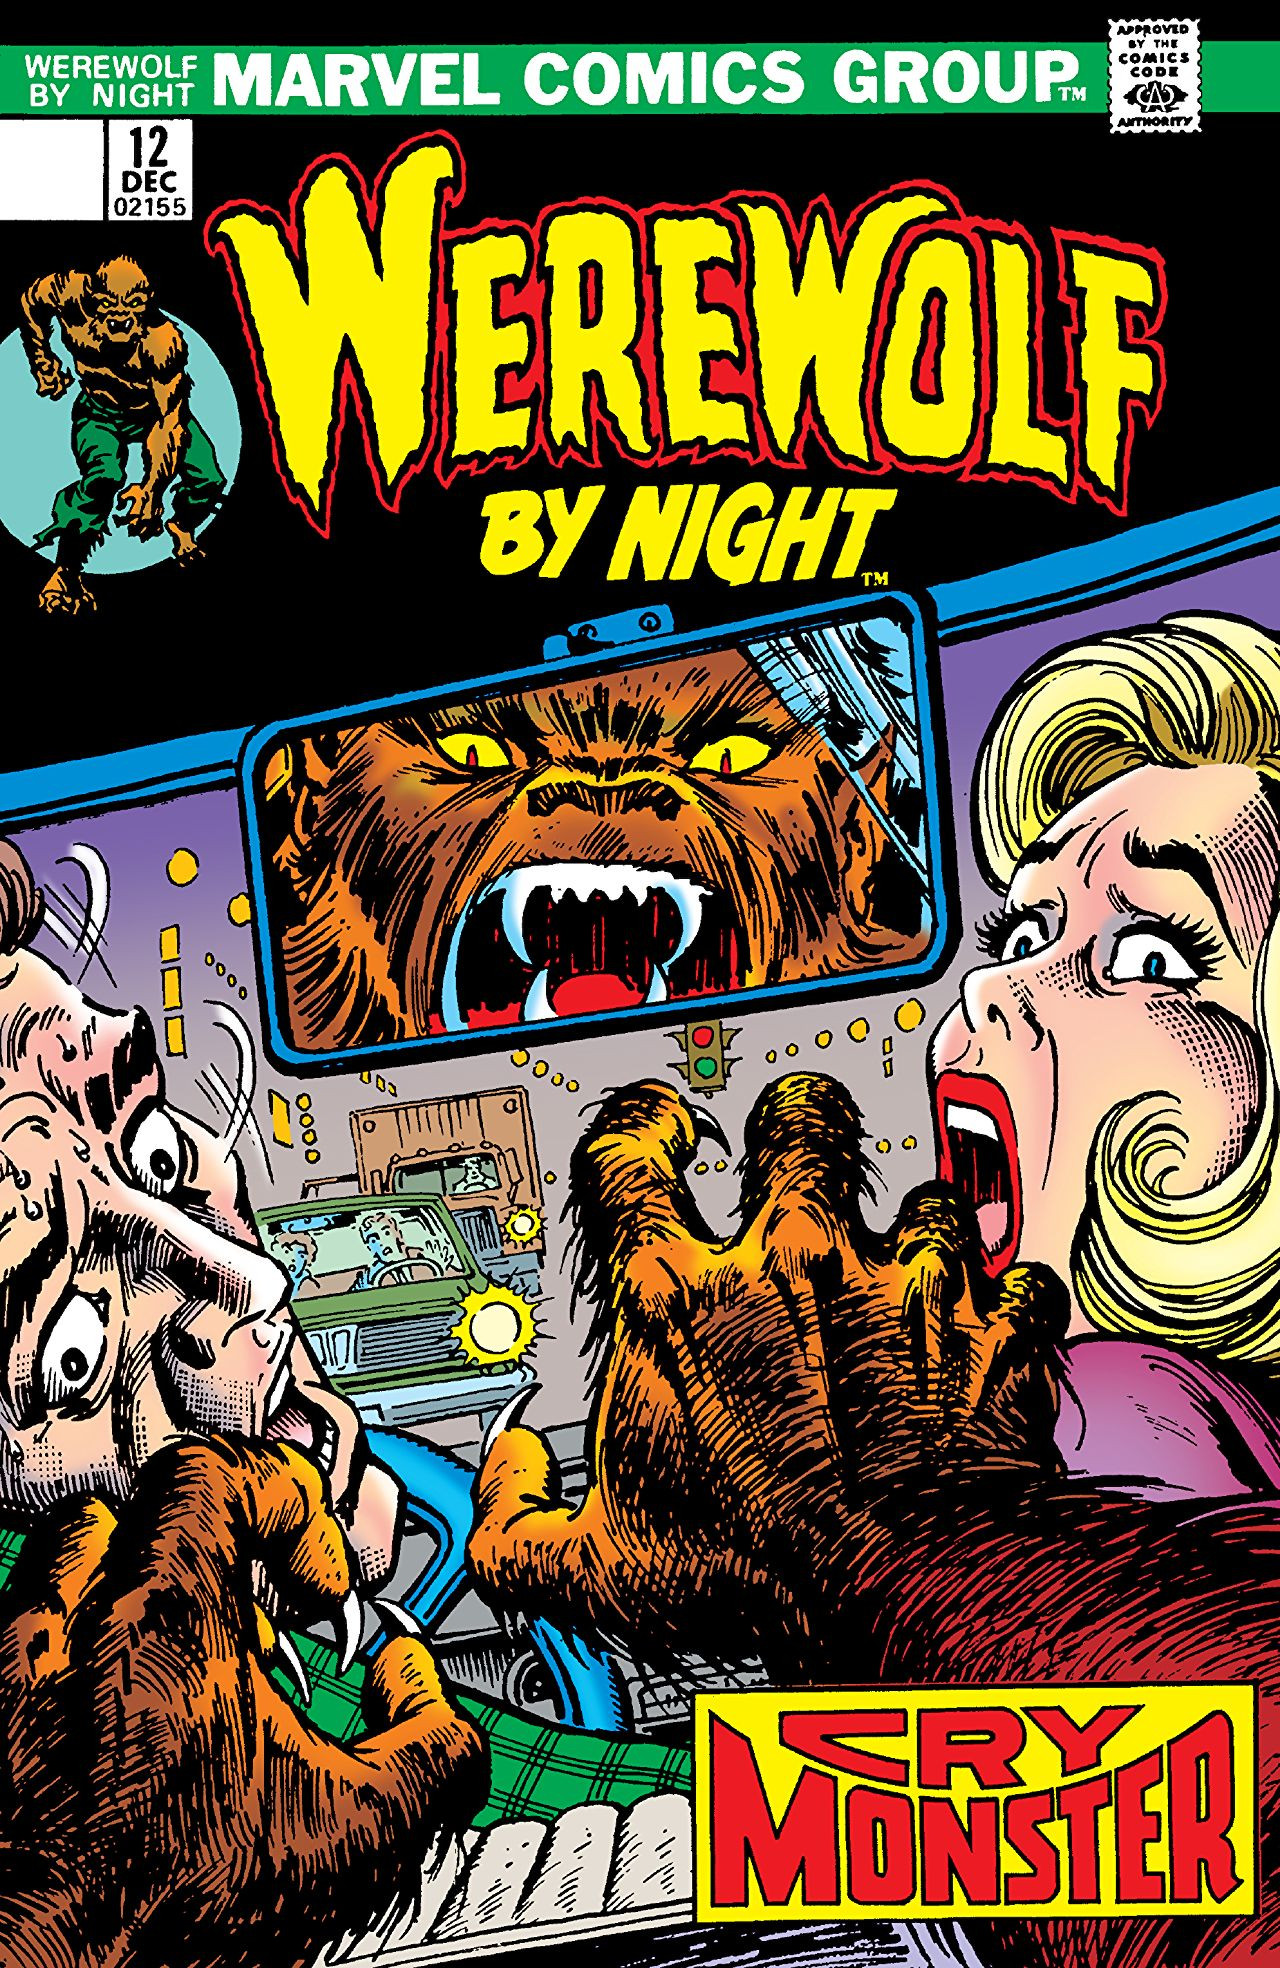 Werewolf by Night Vol 1 12 | Marvel Database | FANDOM ...